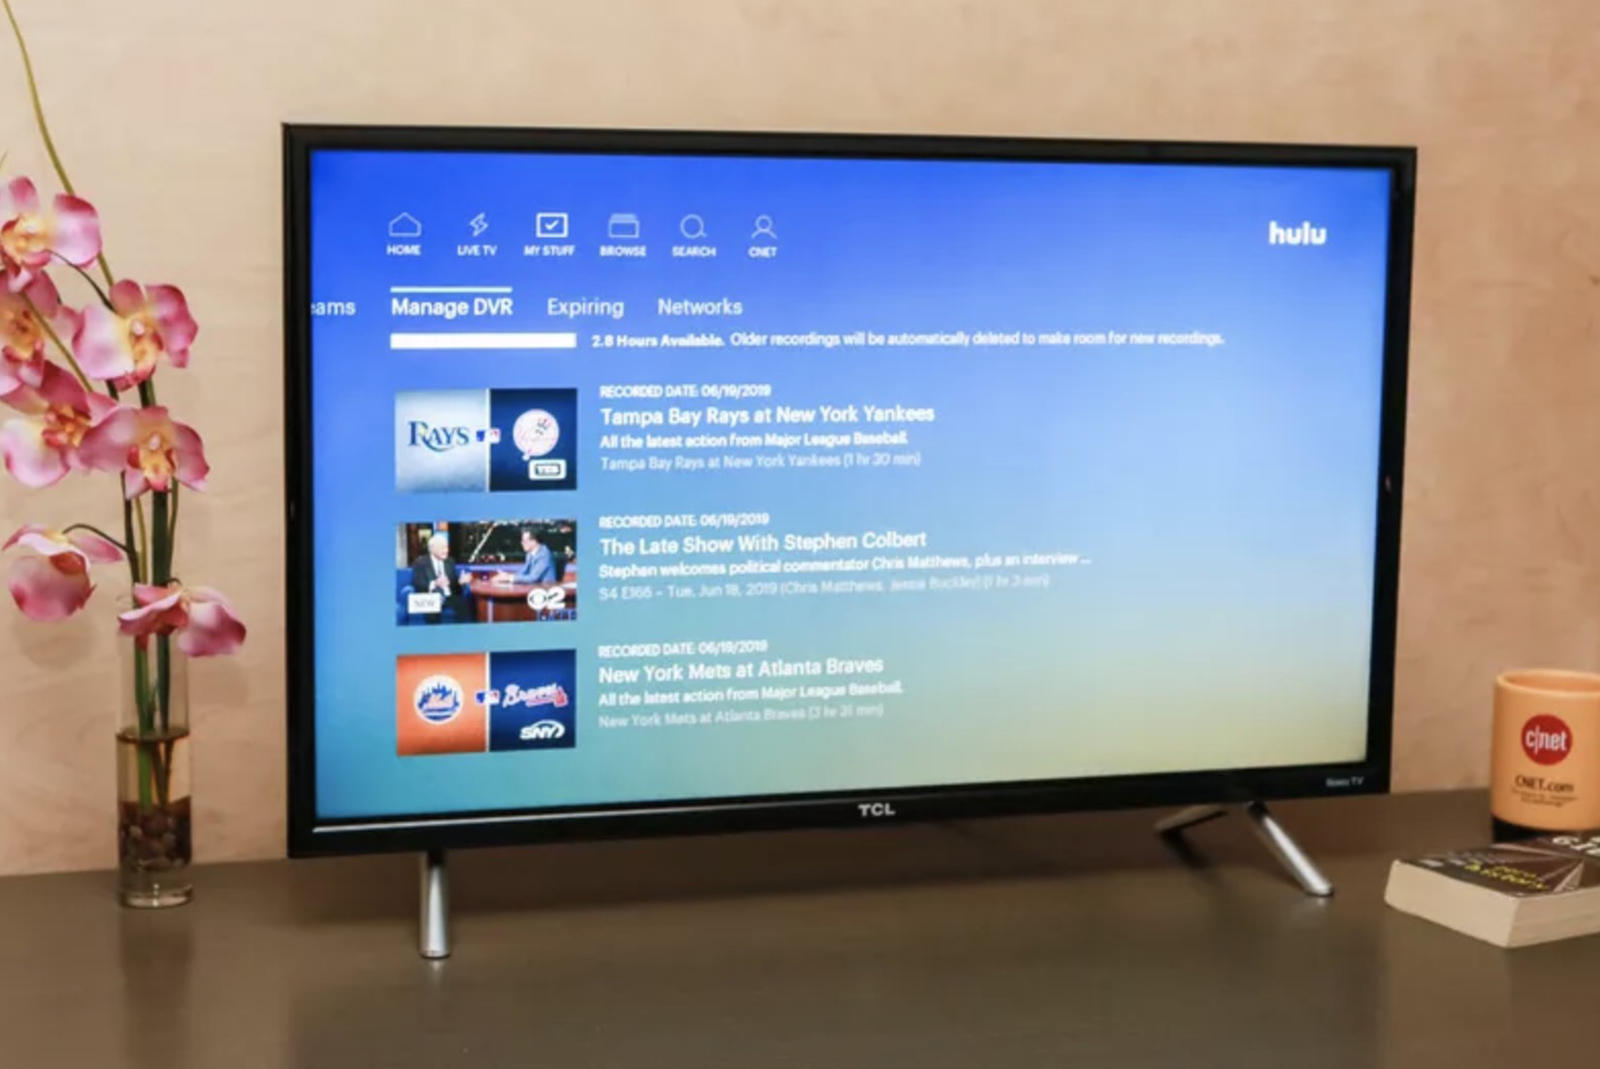 best-live-tv-streaming-service-hulu-with-live-tv-review-cnet.jpg